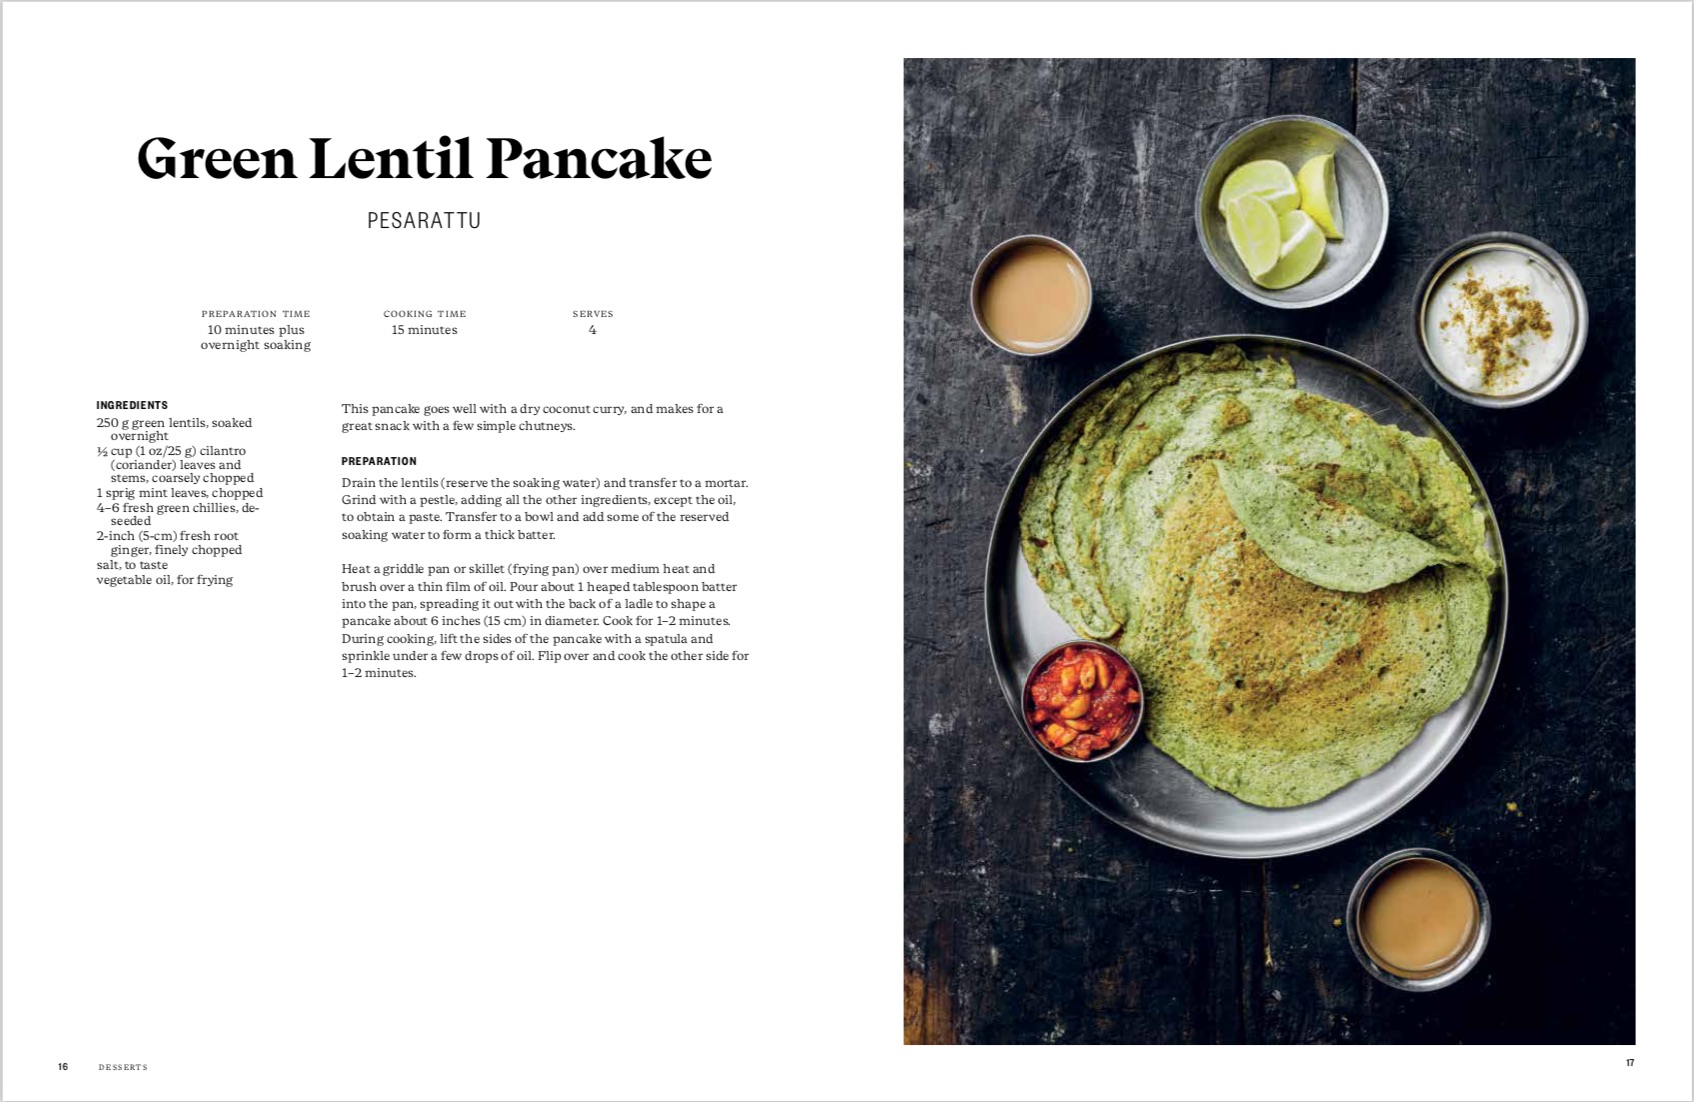 By Pushpesh Pant from The Indian Vegetarian Cookbook copyright Phaidon 2018